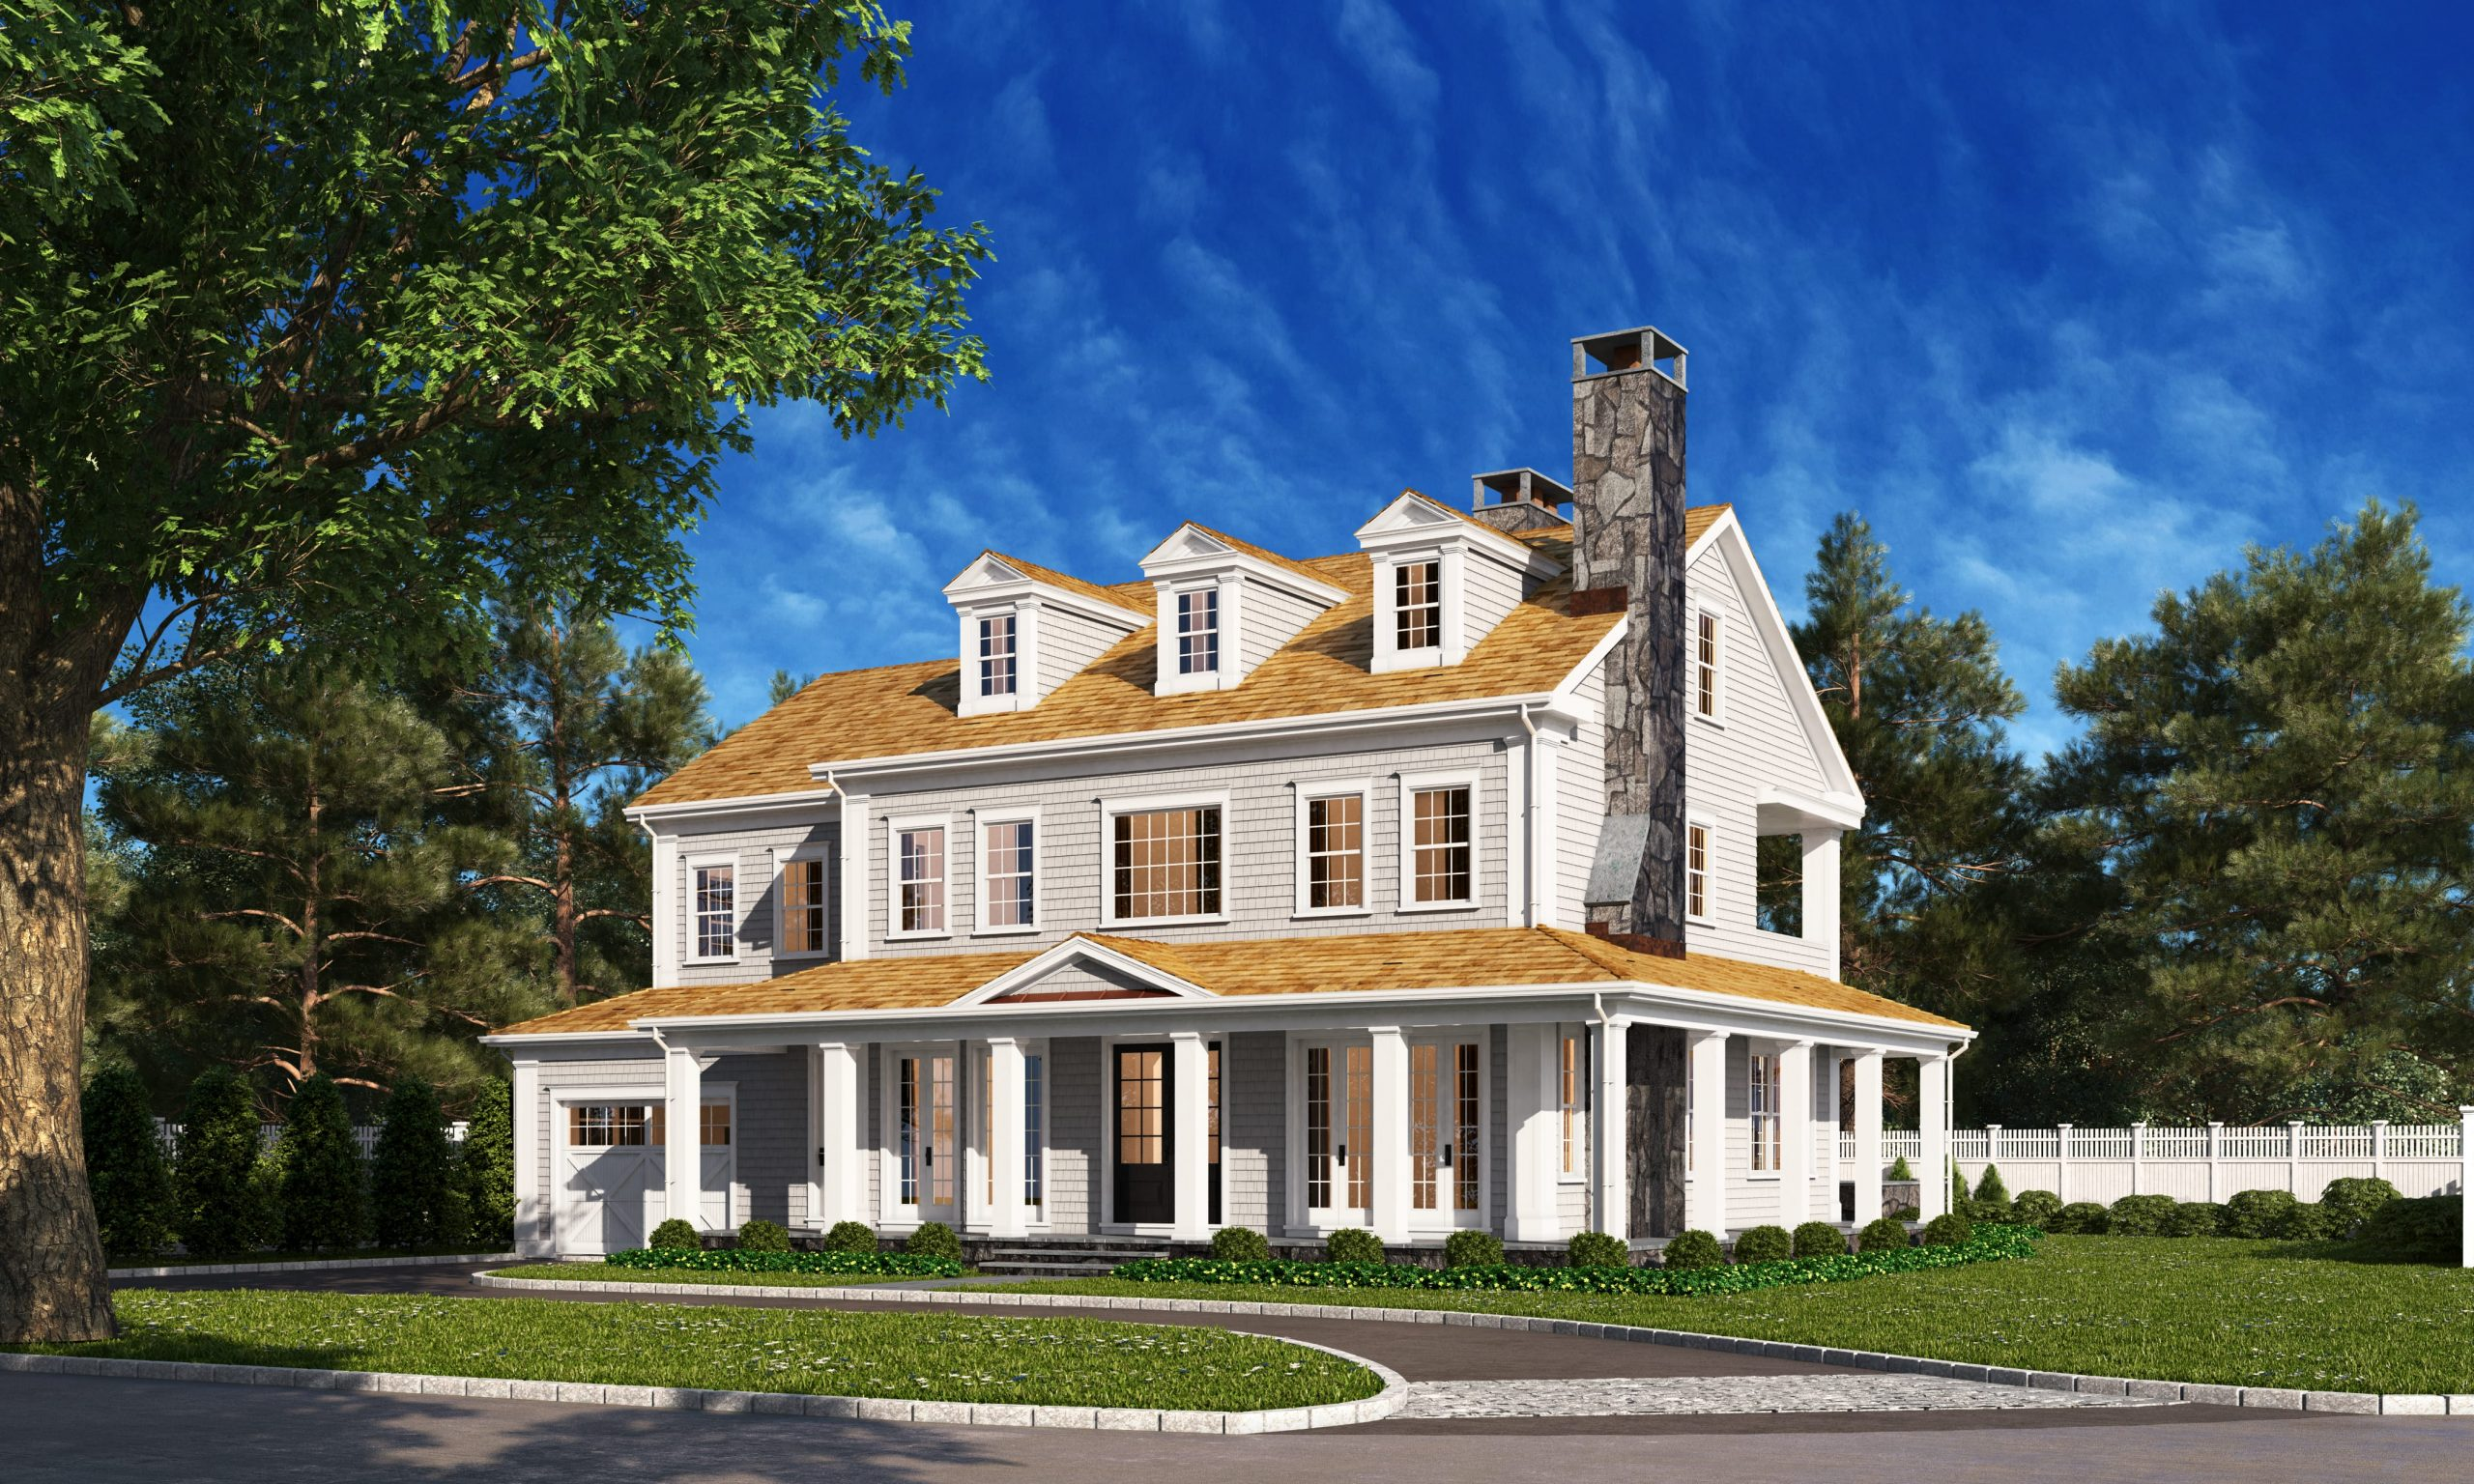 Riverside CT home design by DeMotte Architects front shown